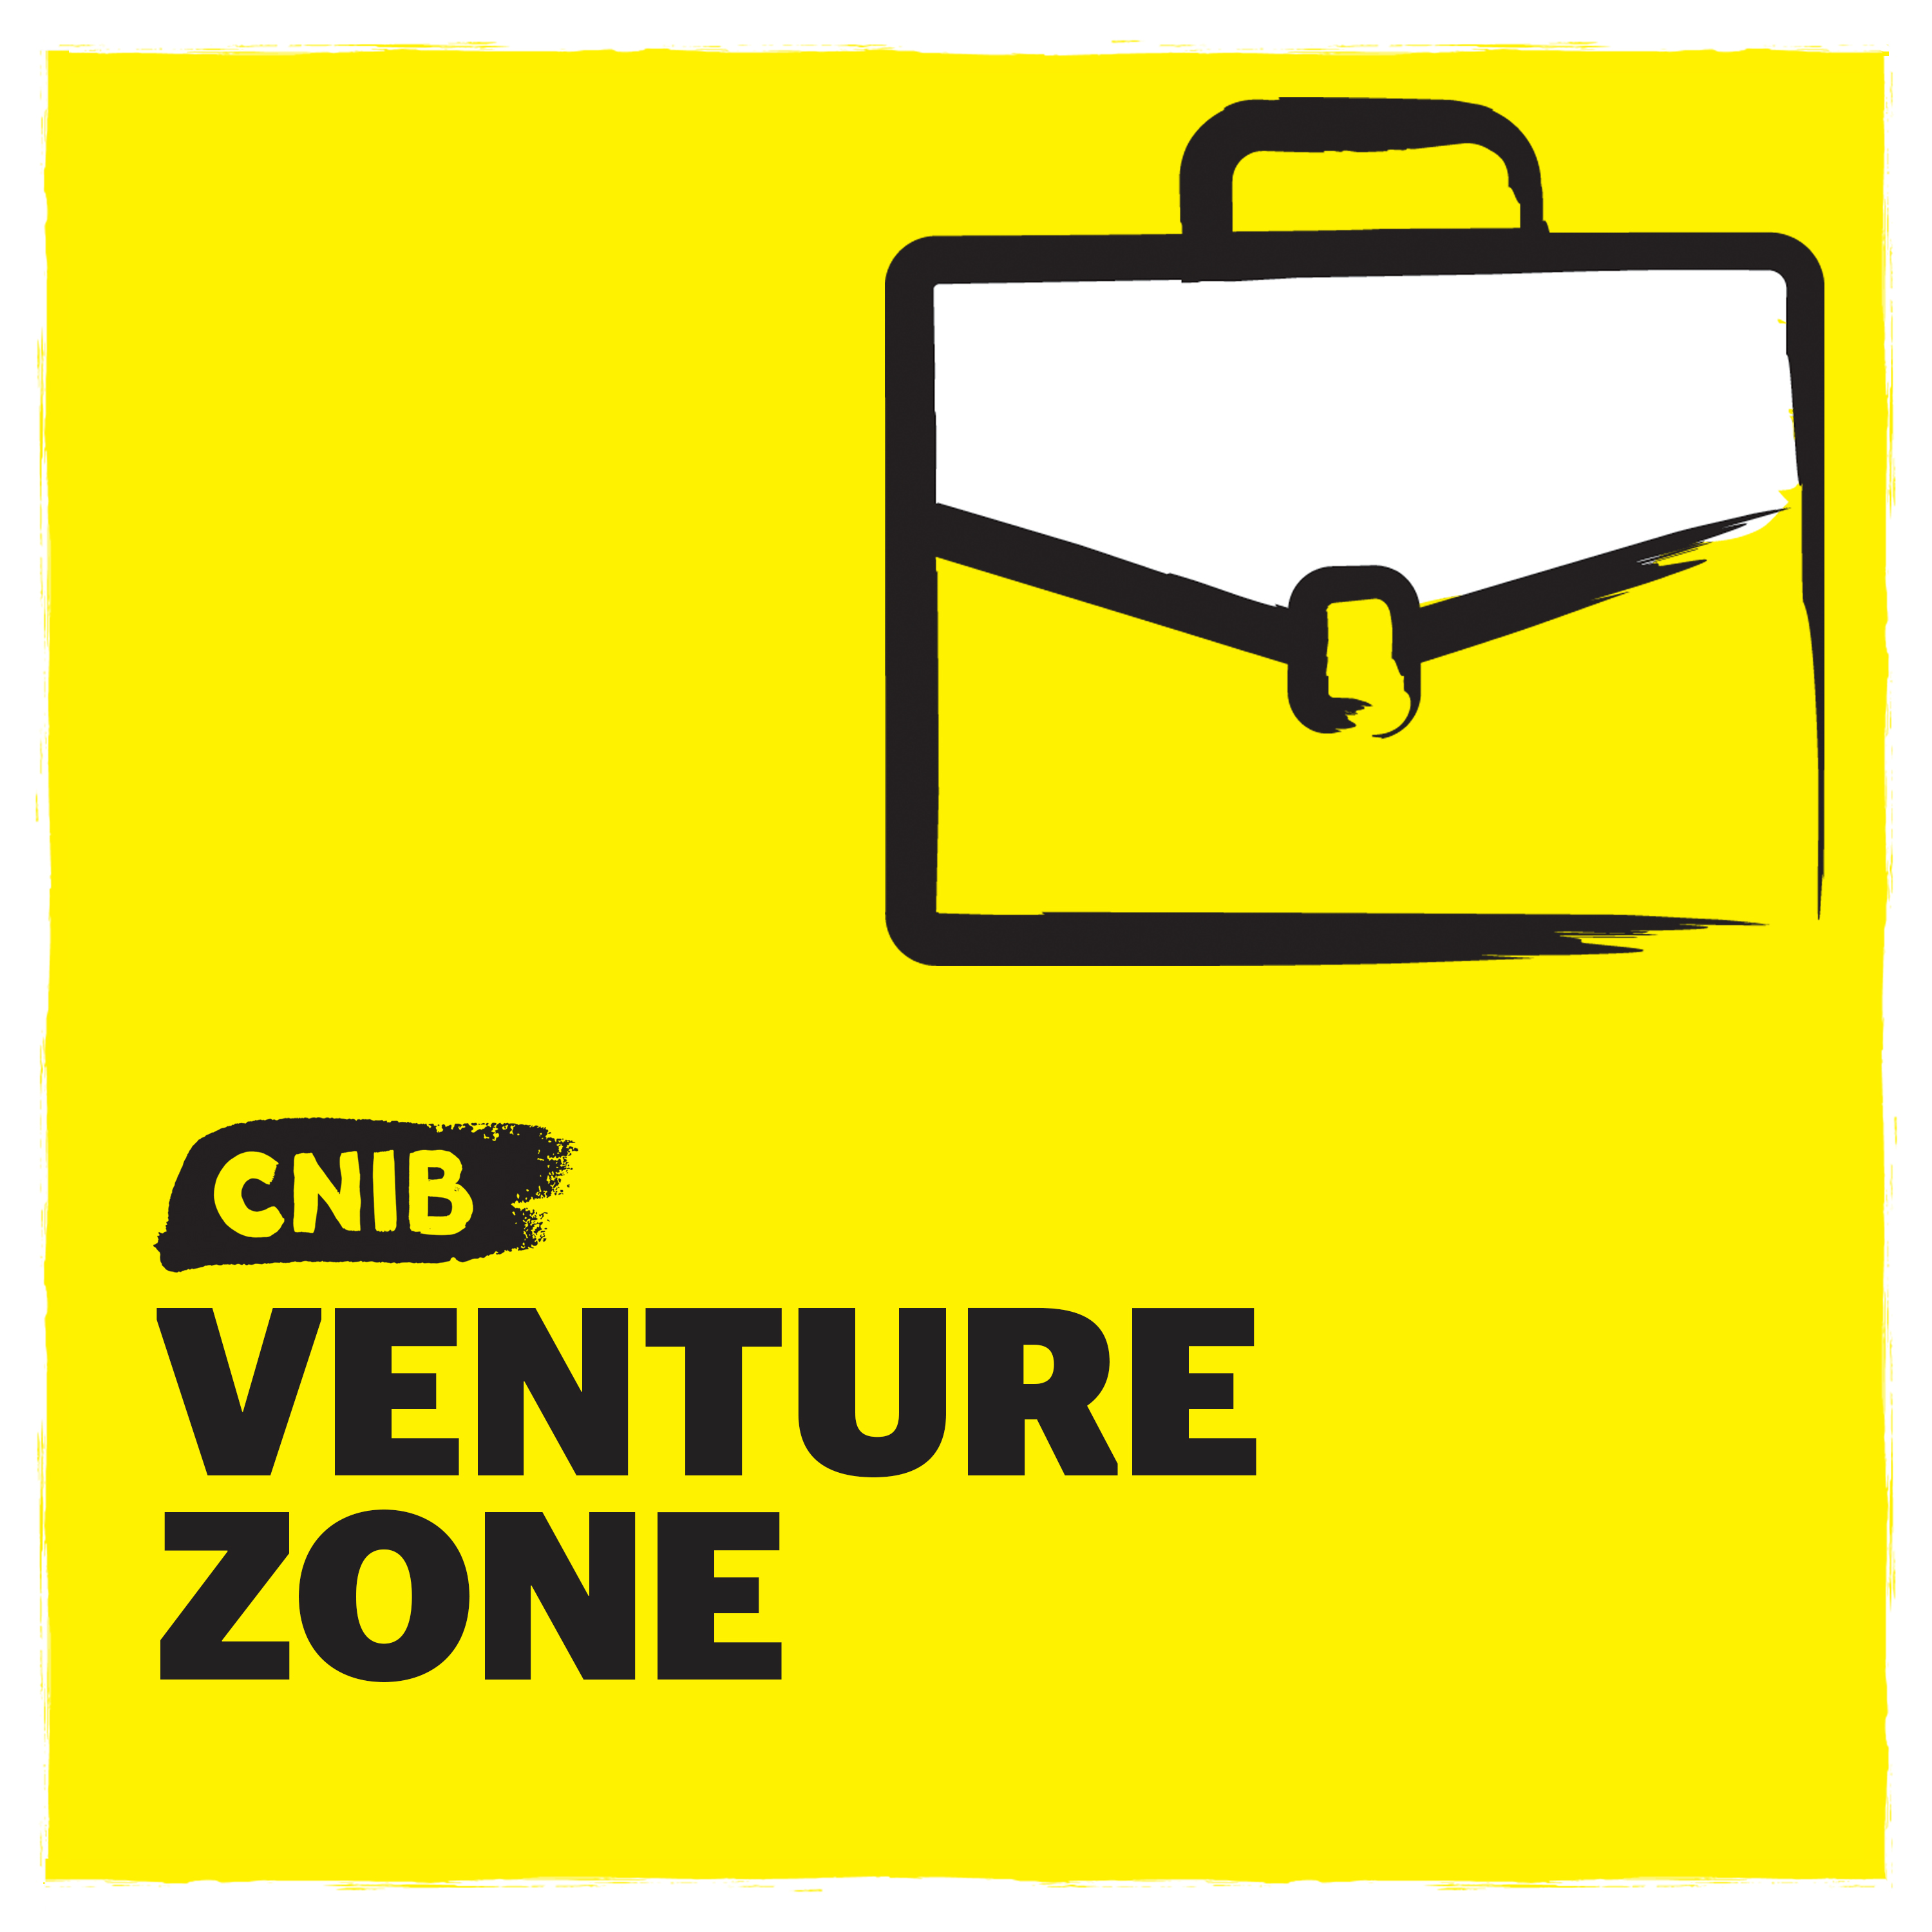 """CNIB Venture Zone"" with breifcase icon on yellow."